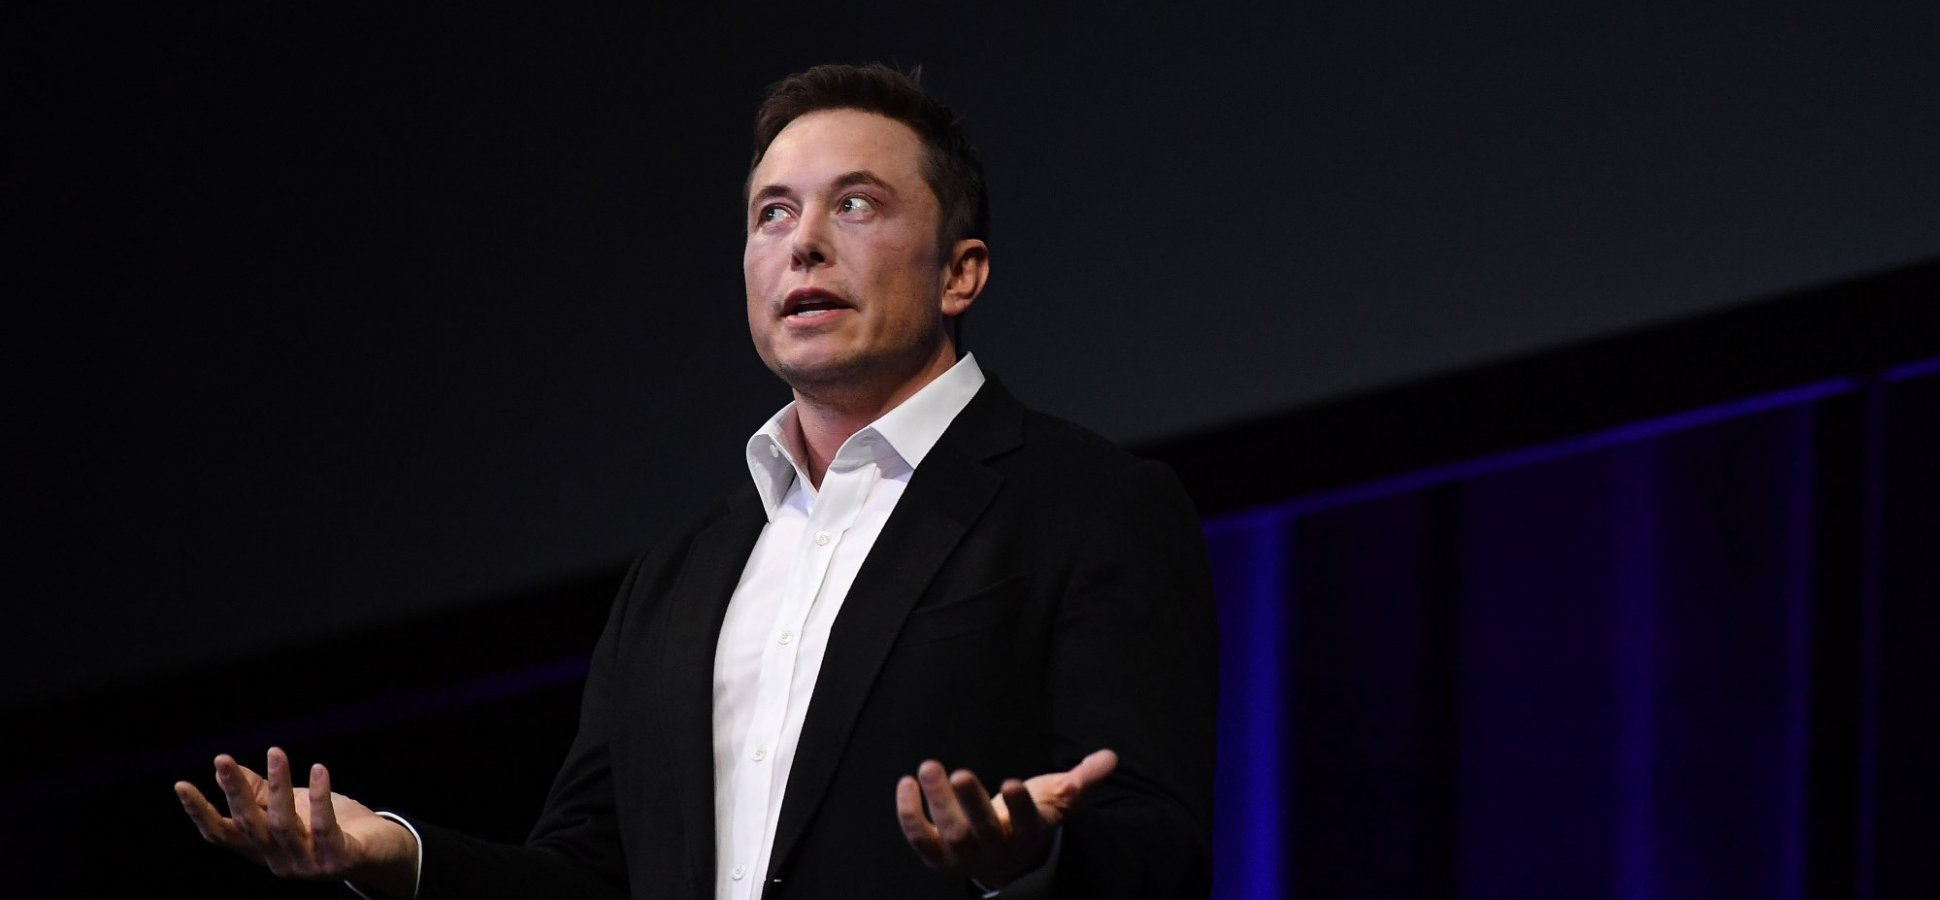 Even Business Leaders Like Elon Musk Have Been Bullied. Here's How to Rise Above the Cruelty